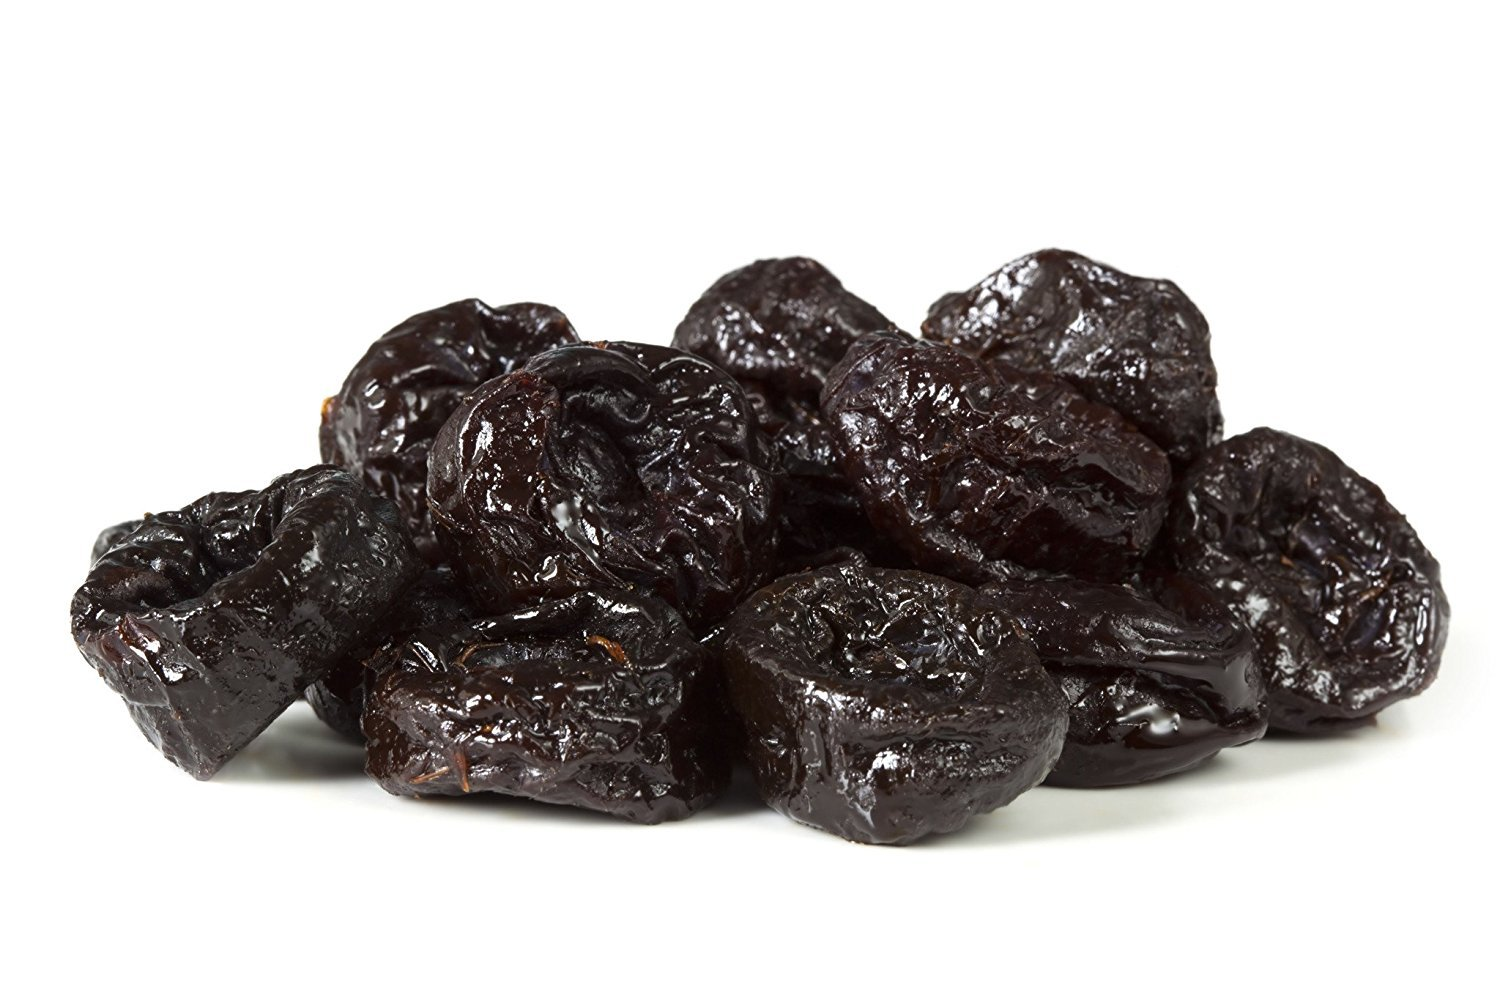 Anna and Sarah Dried Prunes Pitted 5 Lbs in Resealable Bag by Anna and Sarah